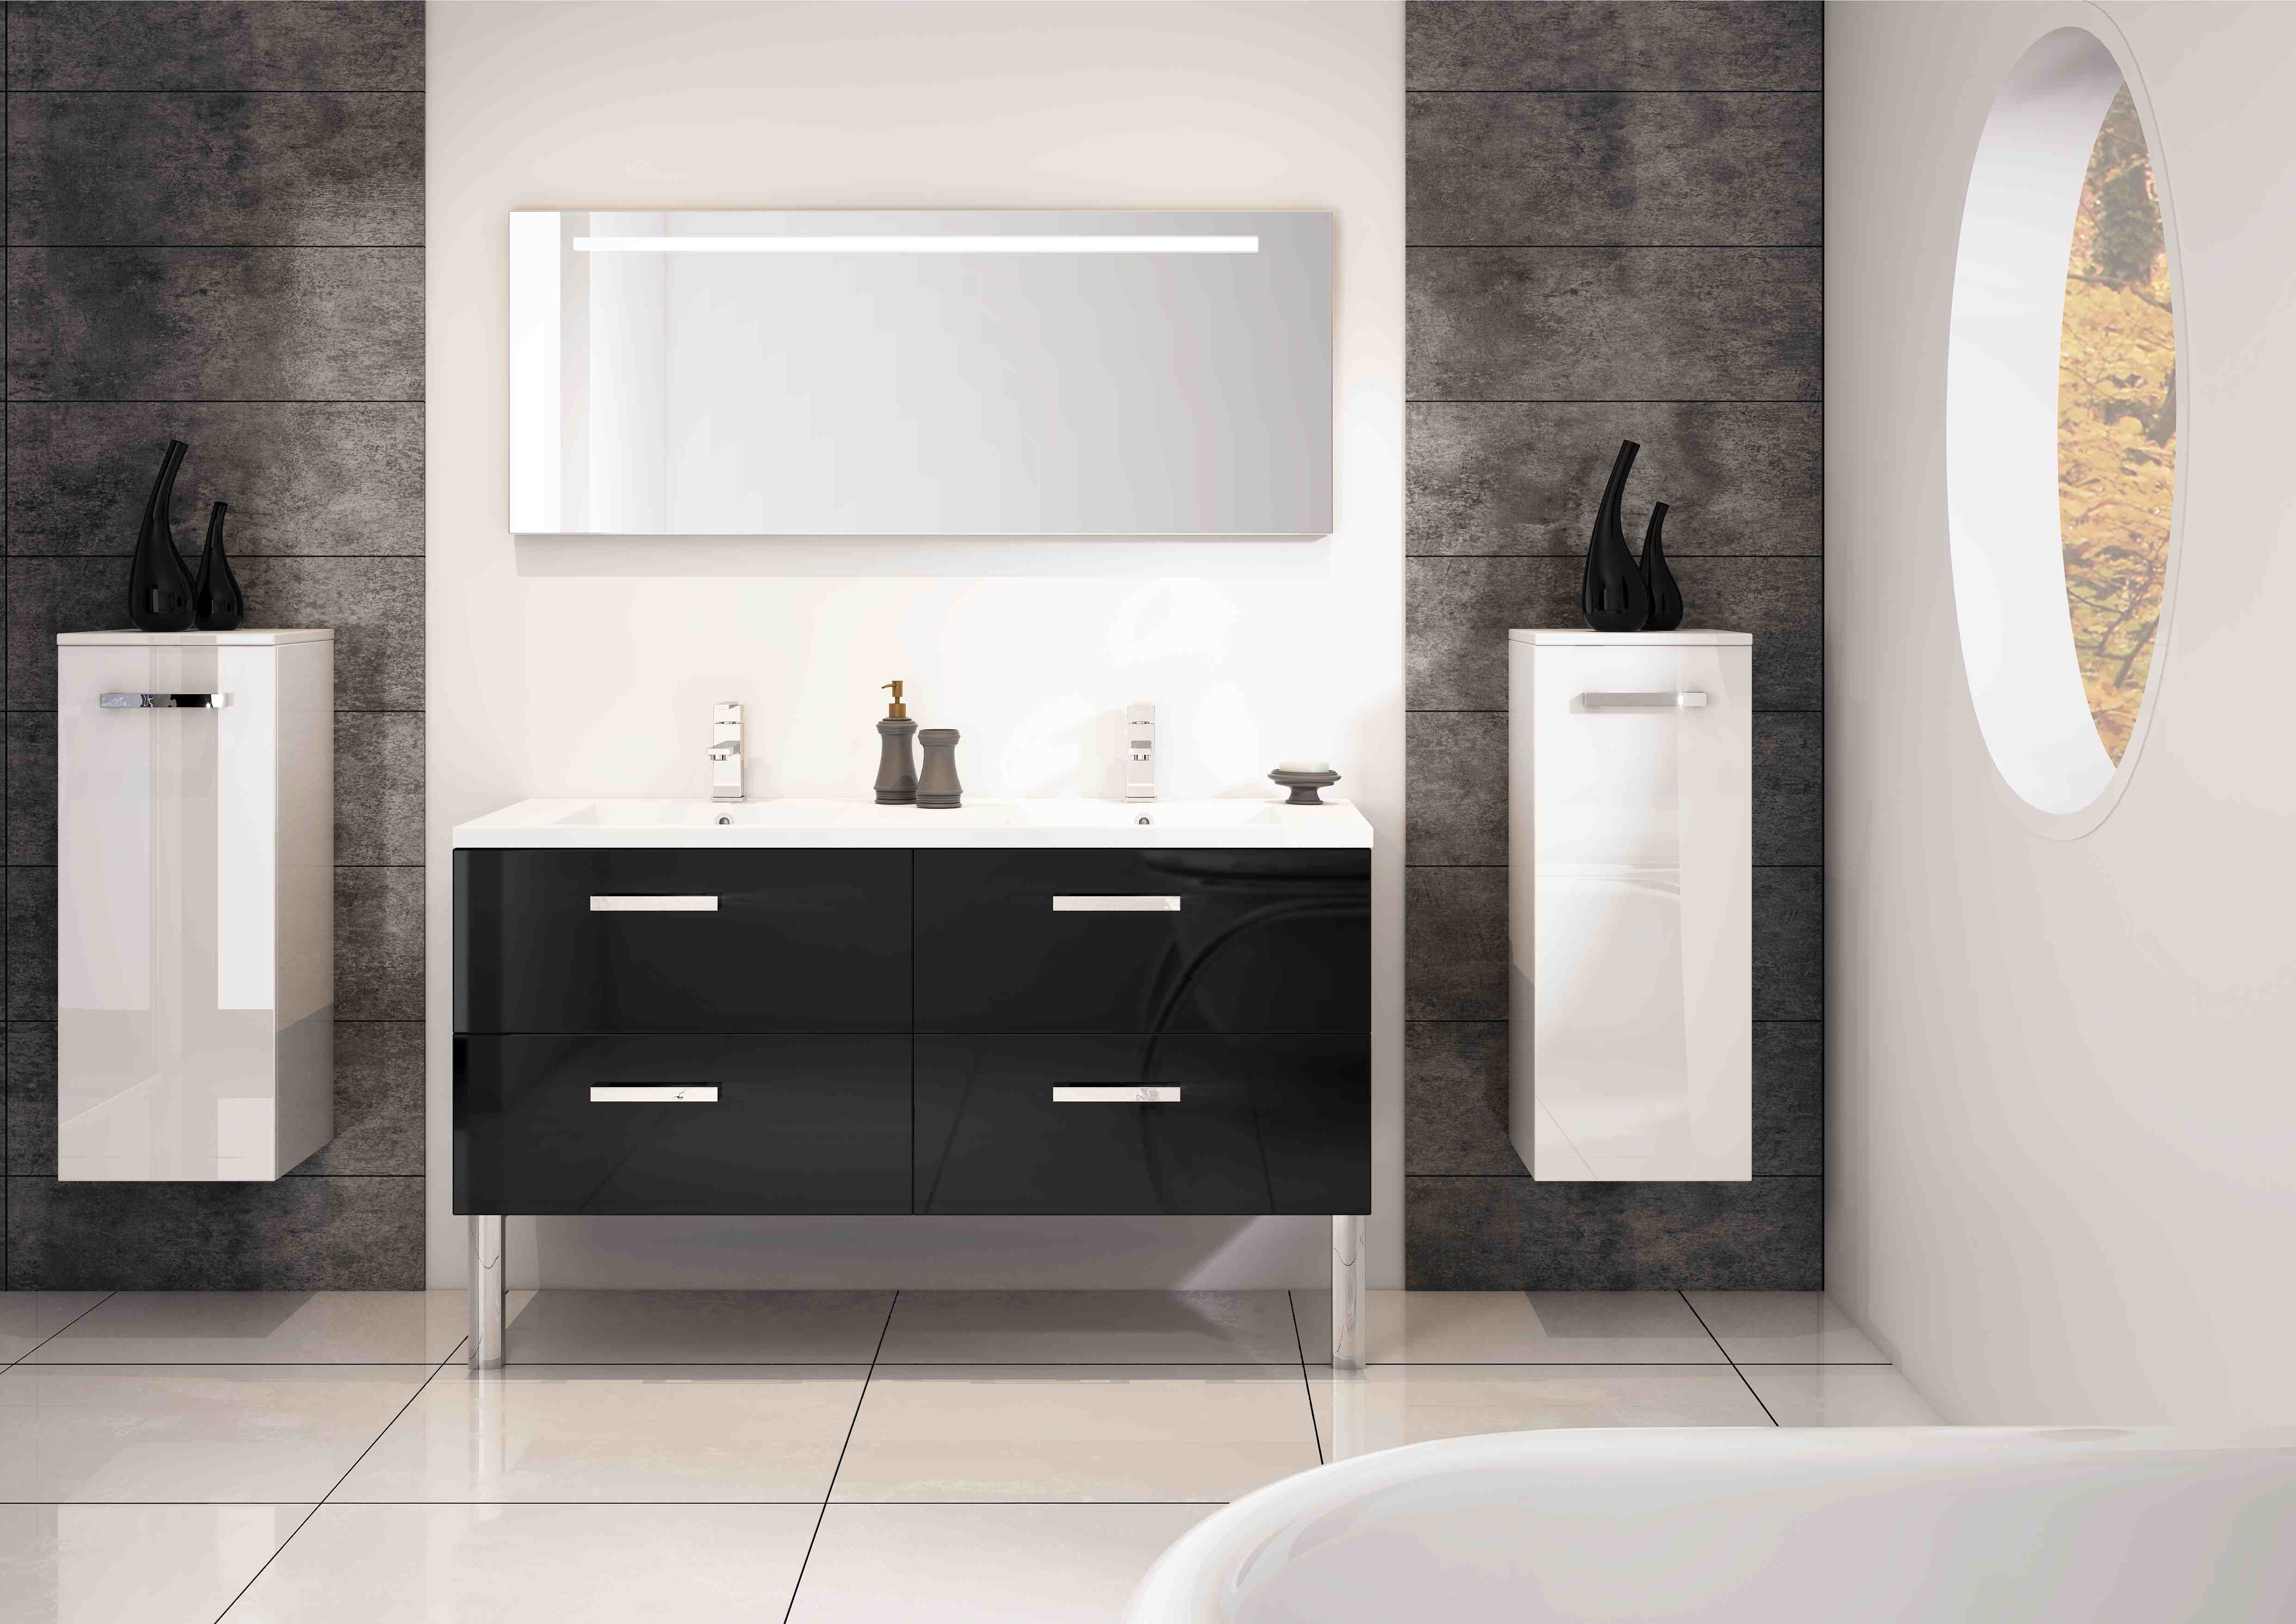 meuble salle de bain faible profondeur leroy merlin. Black Bedroom Furniture Sets. Home Design Ideas